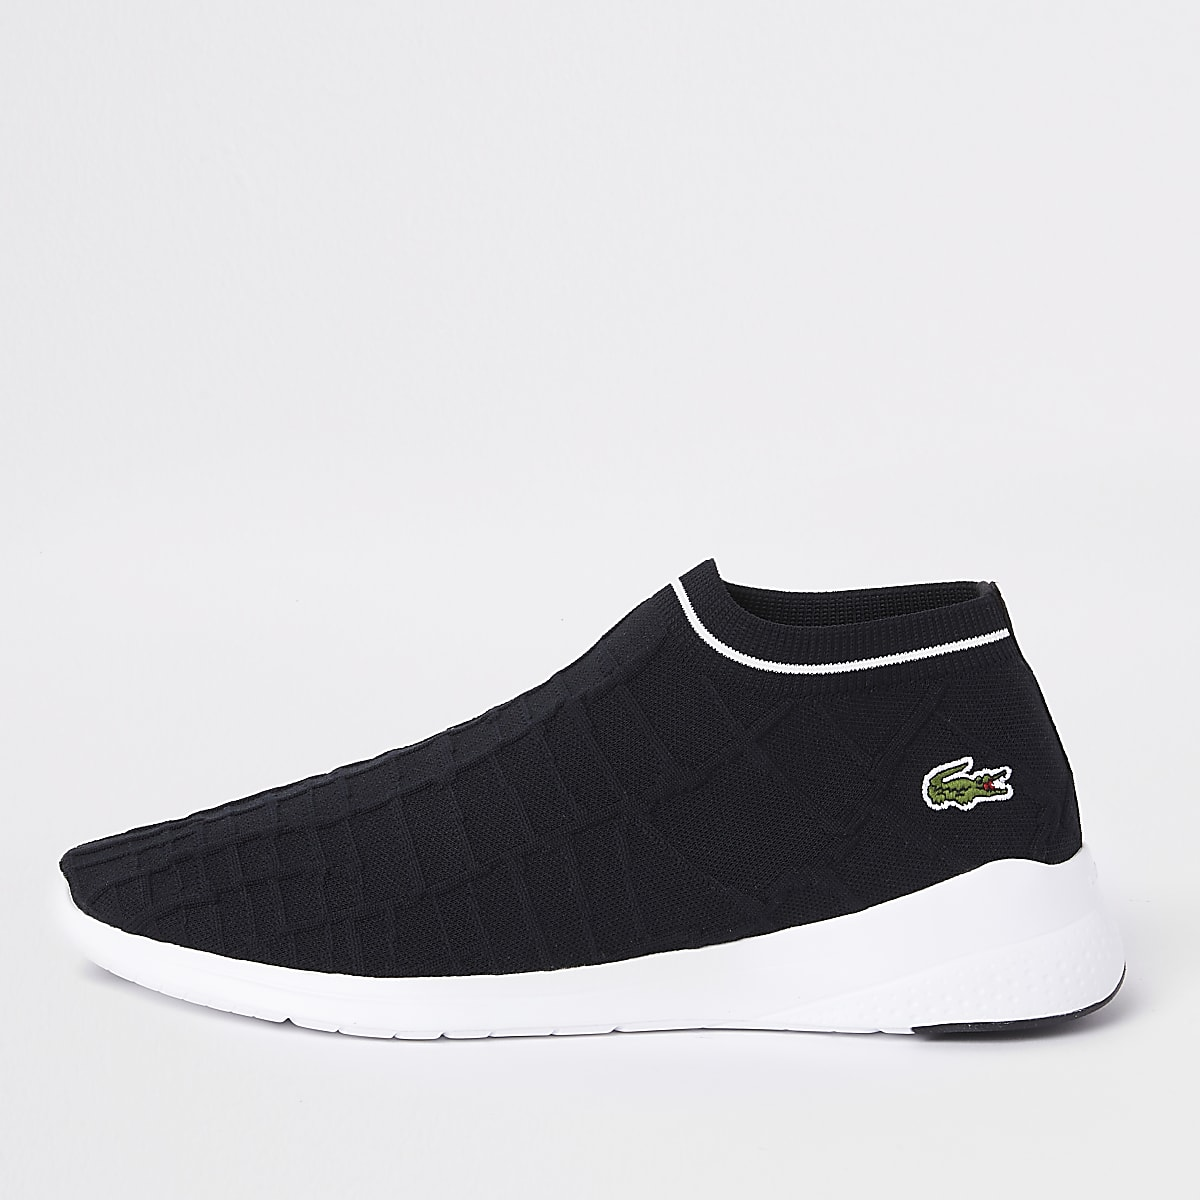 1a5fc7af3644 Lacoste black sock trainers - Trainers - Shoes   Boots - men